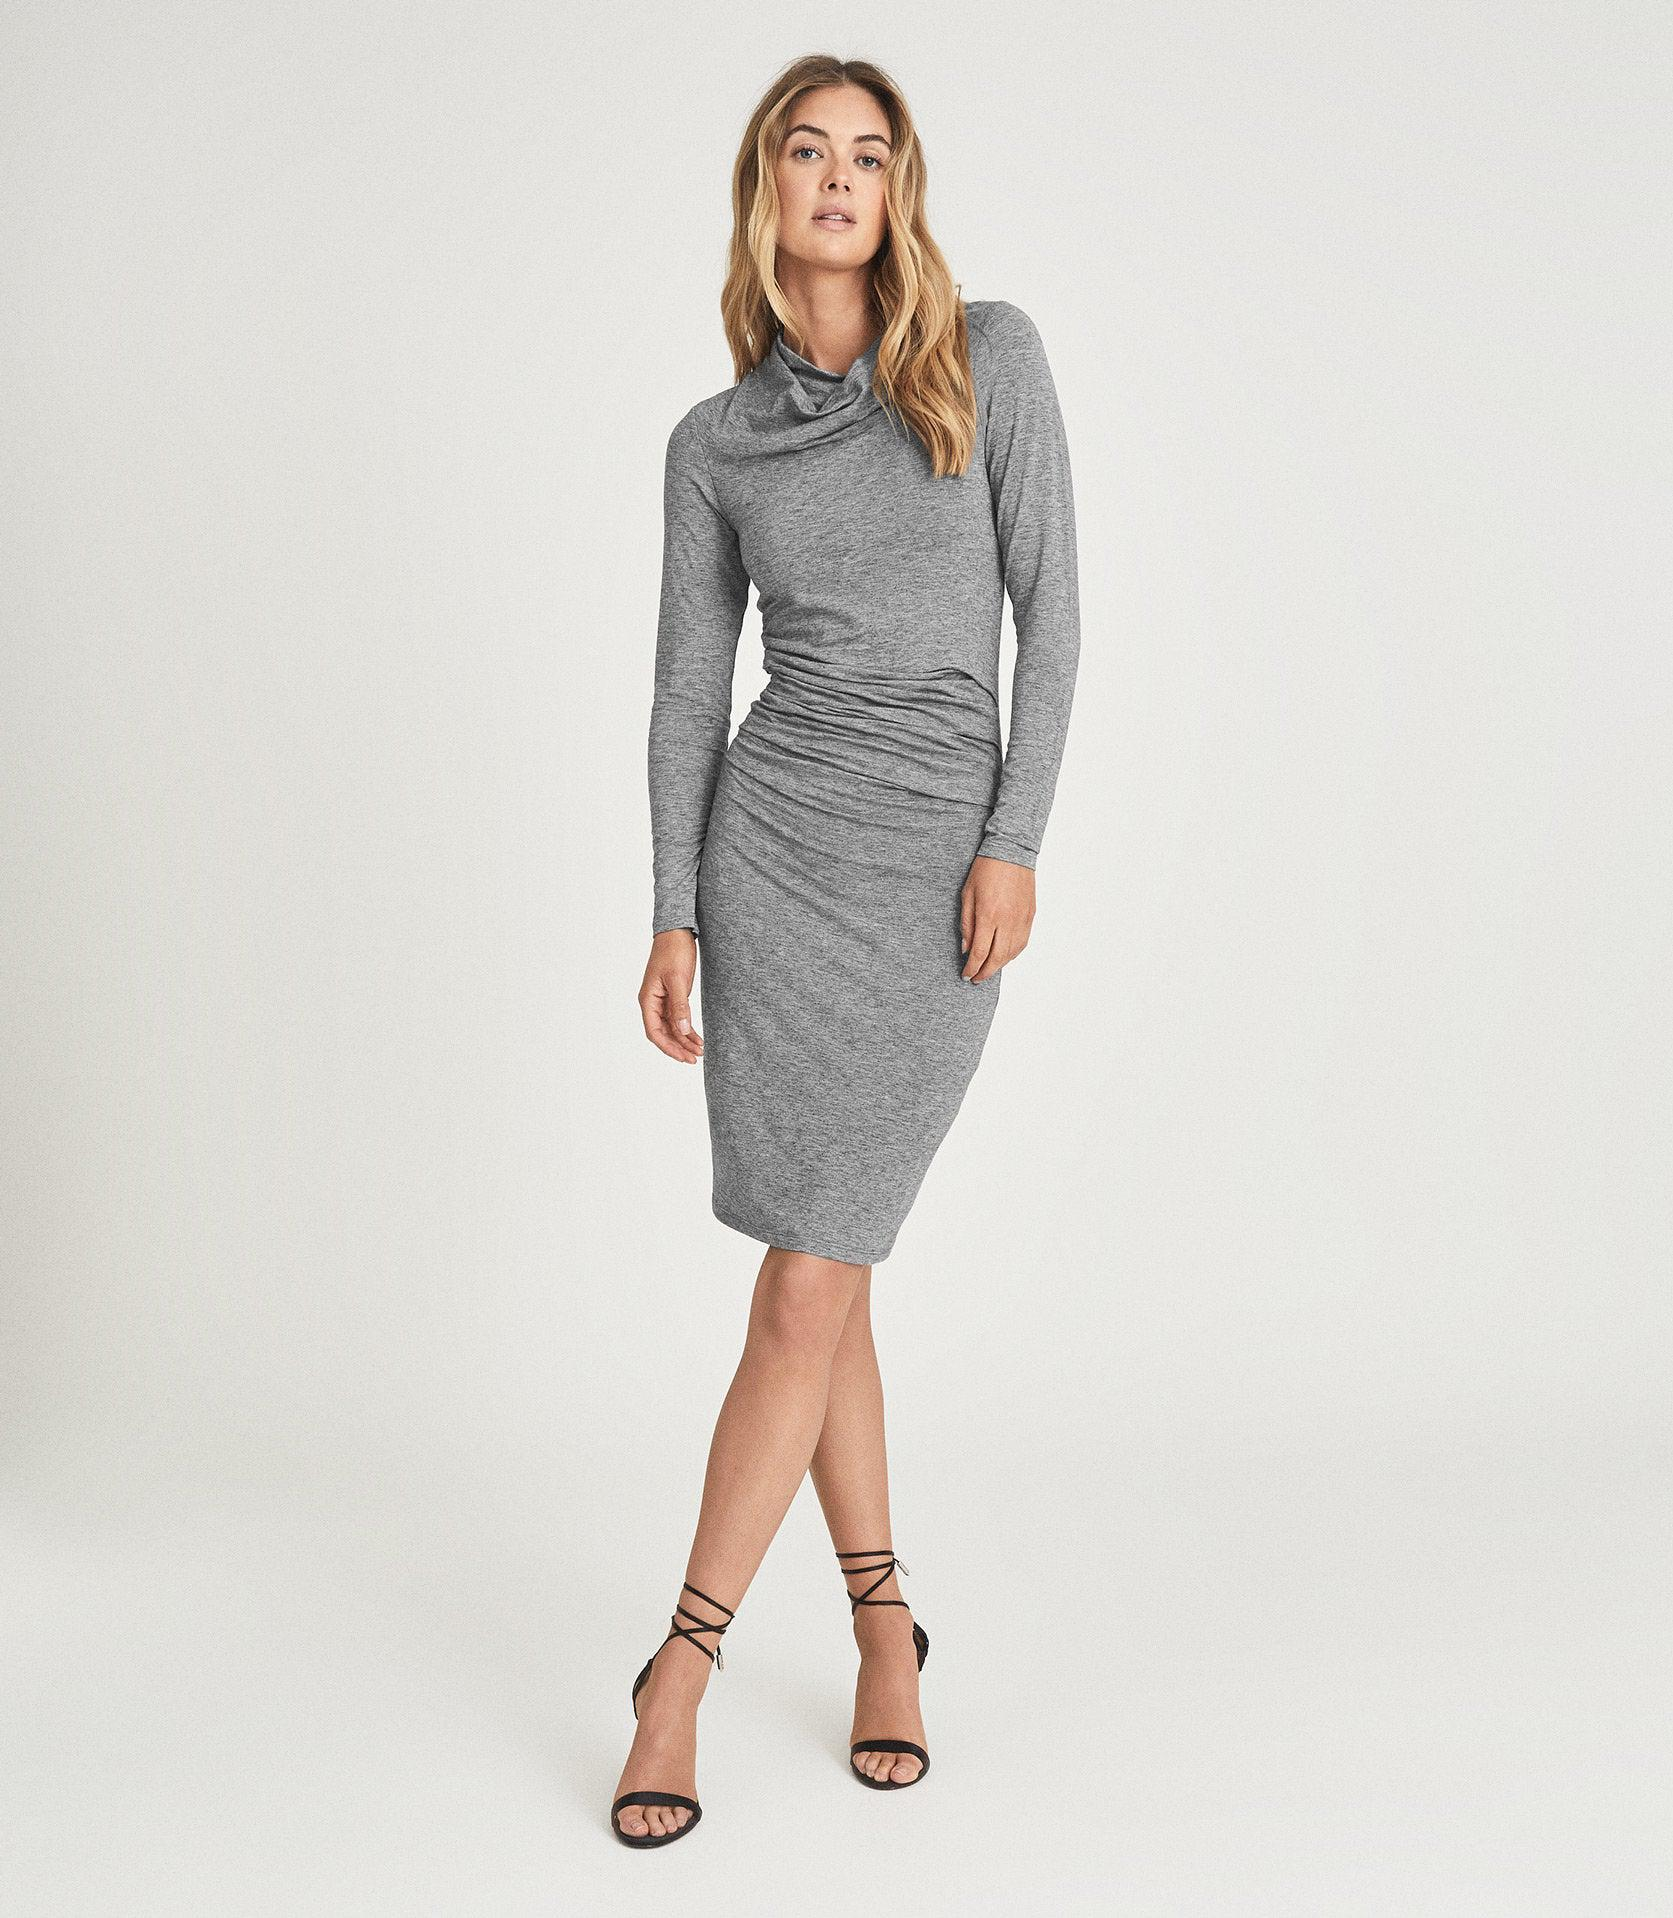 SARA - RUCHED WOOL-JERSEY BODYCON DRESS